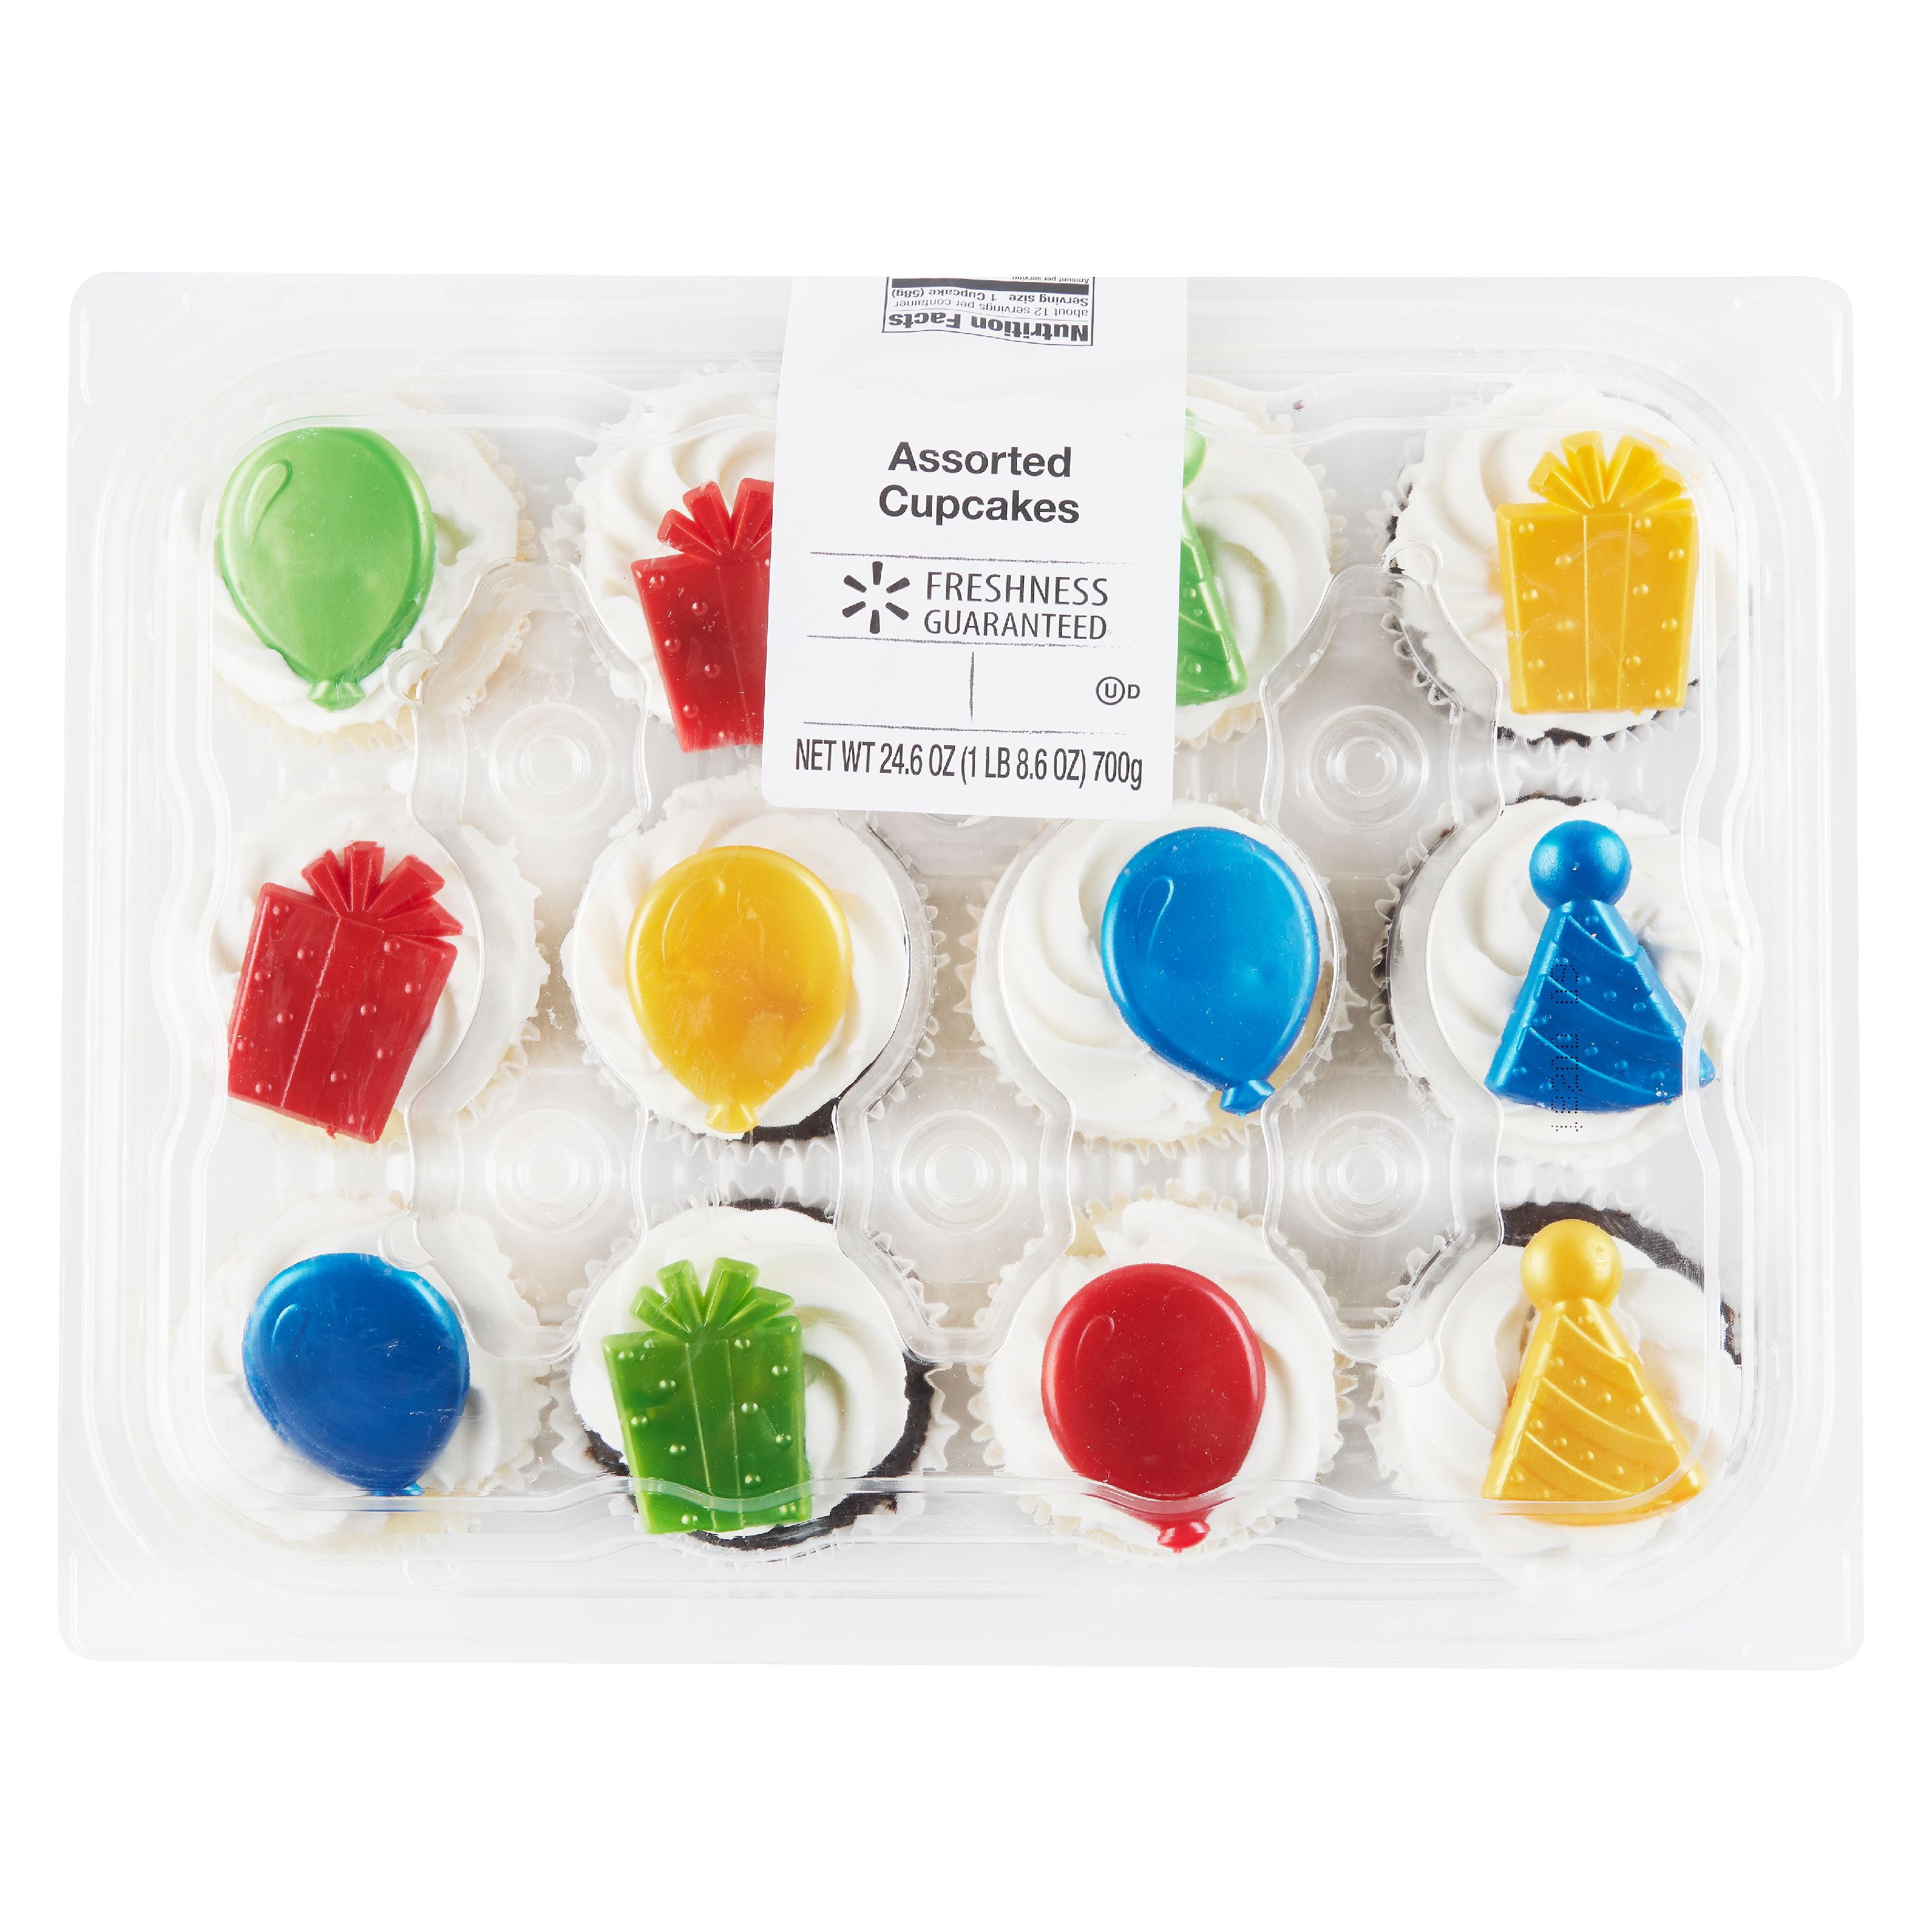 Freshness Guaranteed Assorted Cupcakes, 24.6 oz, 12 Count